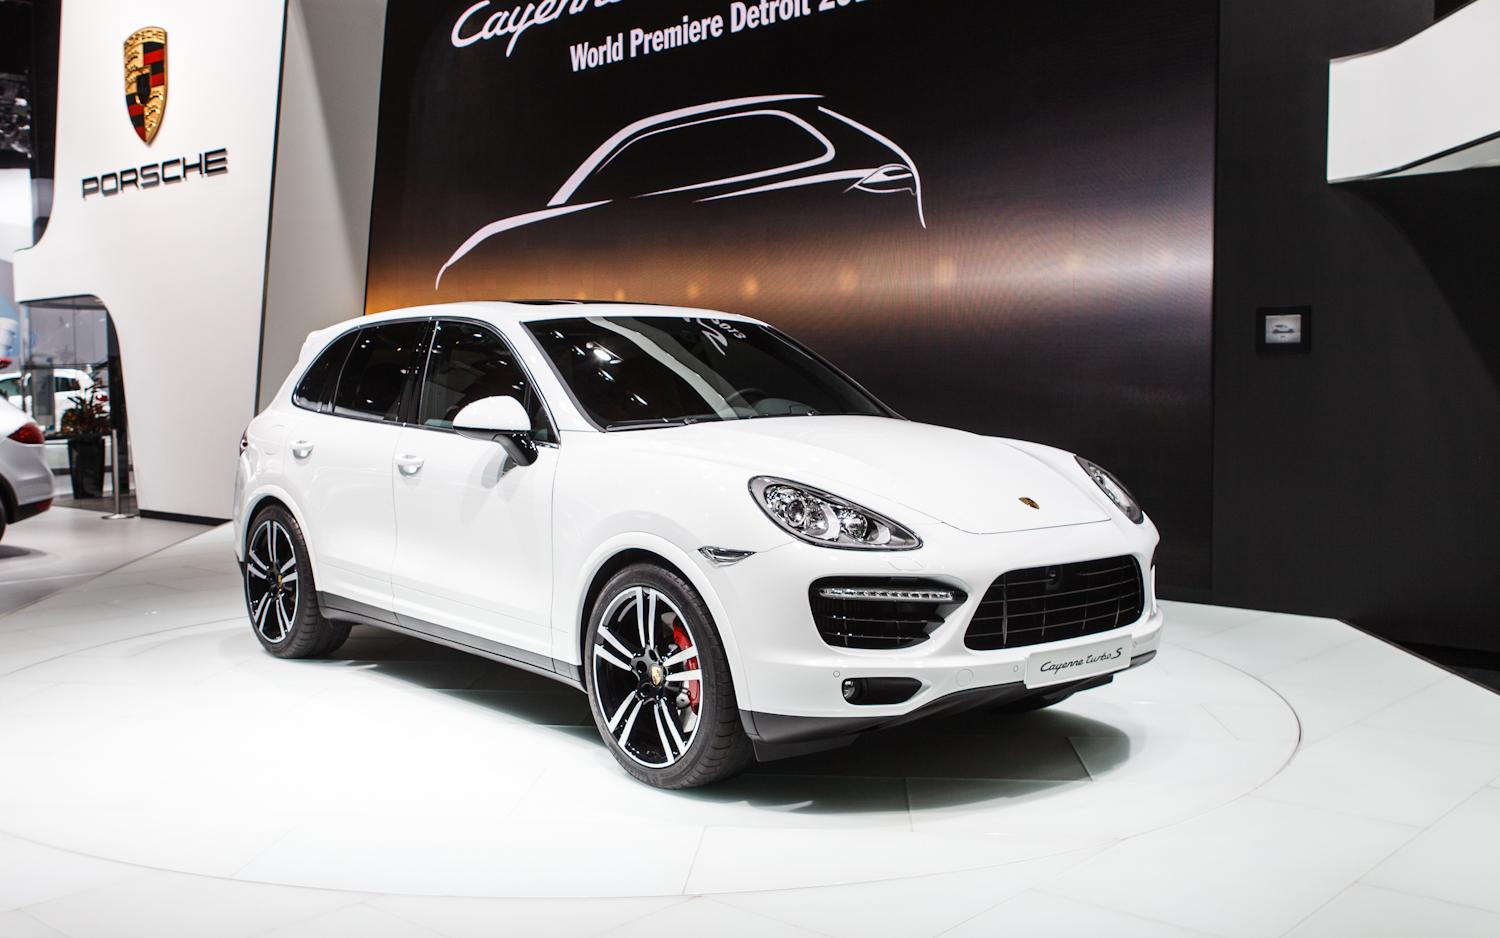 2014 porsche cayenne gts white images galleries with a bite. Black Bedroom Furniture Sets. Home Design Ideas